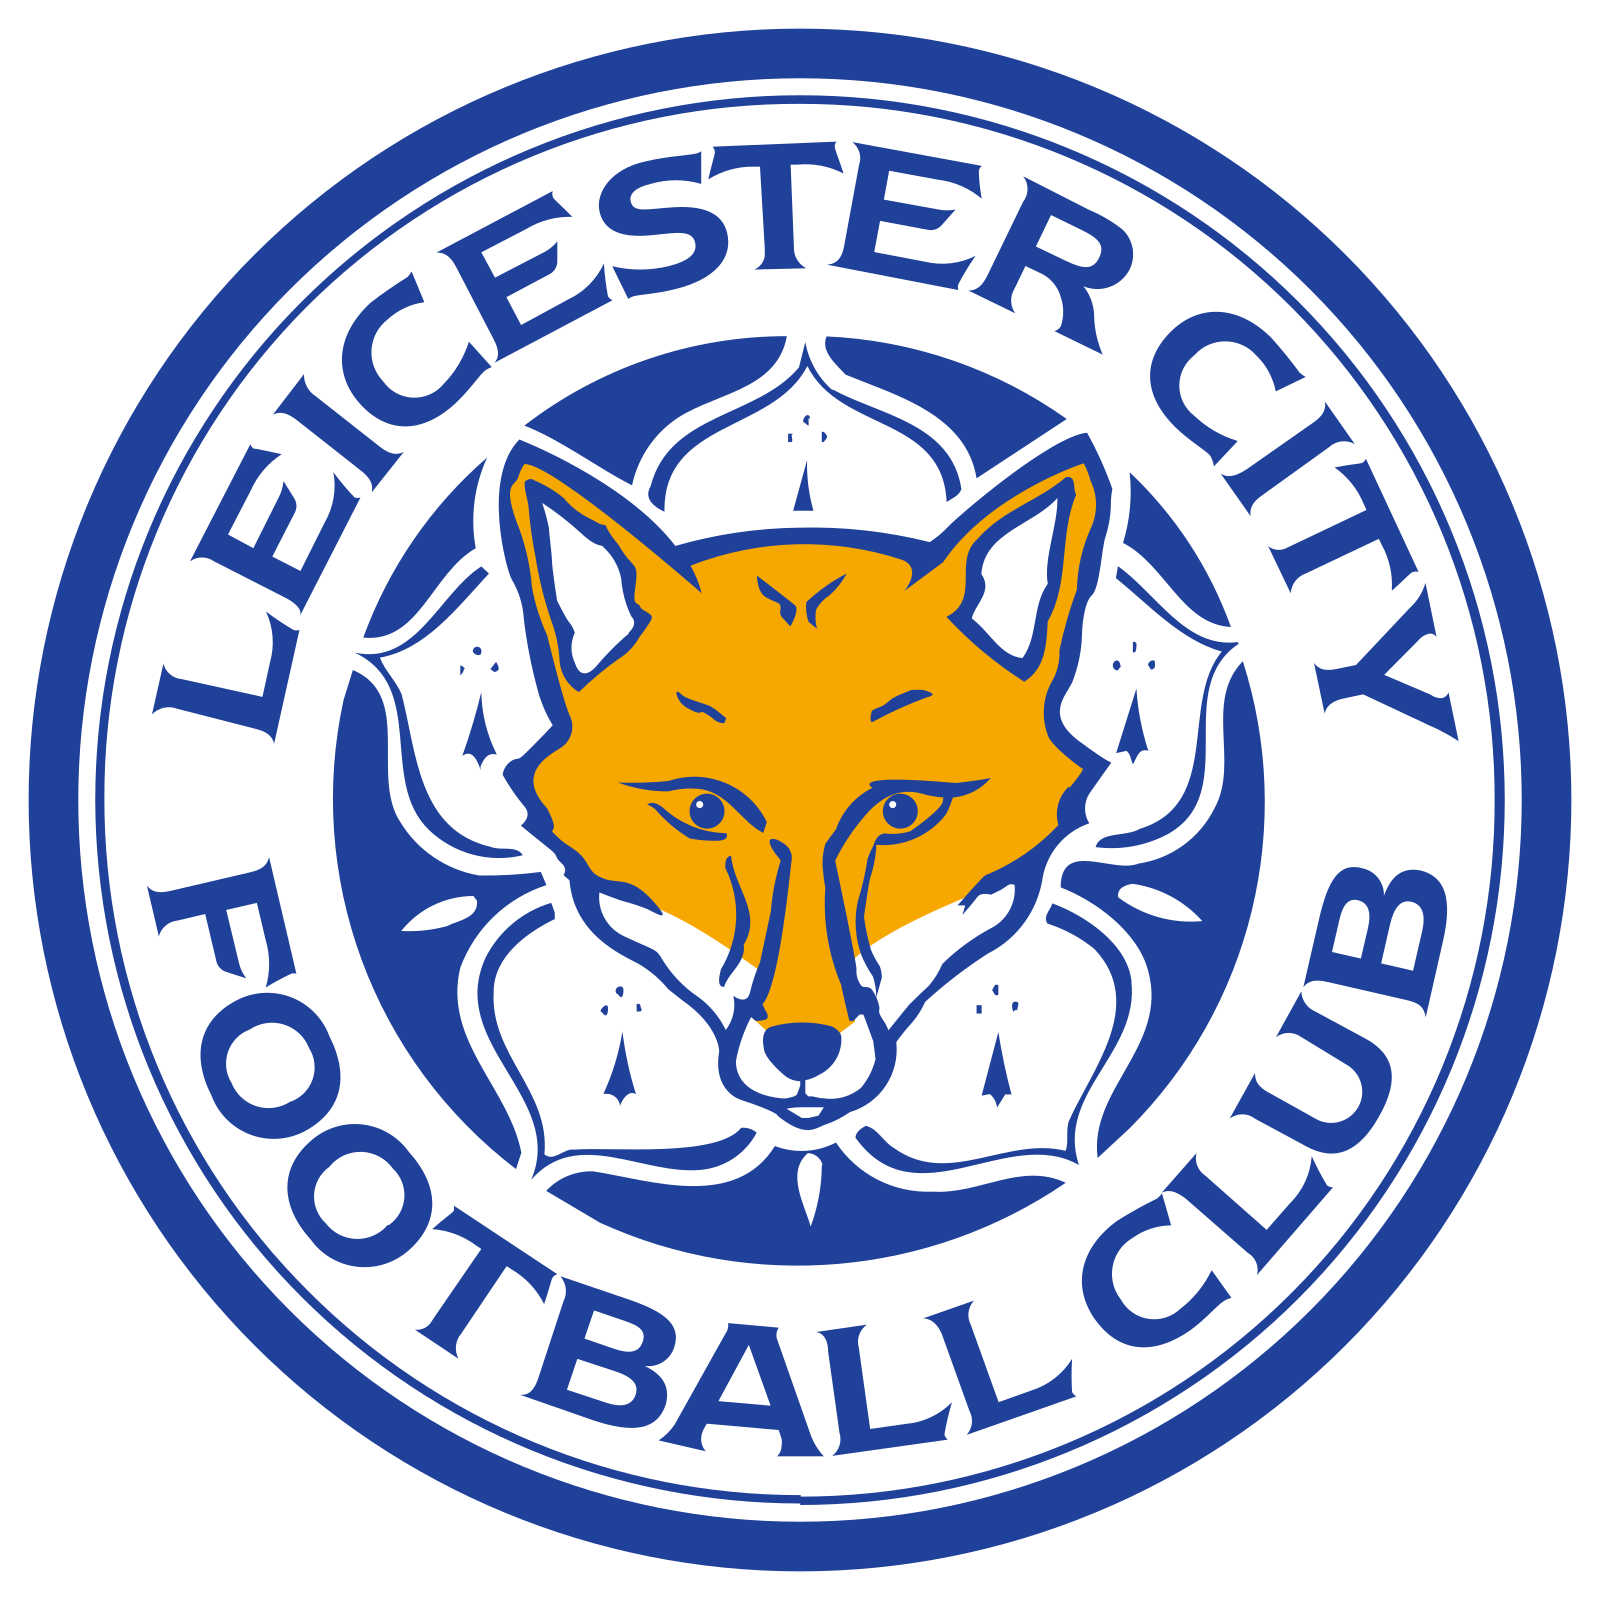 leicester-city-logo-2